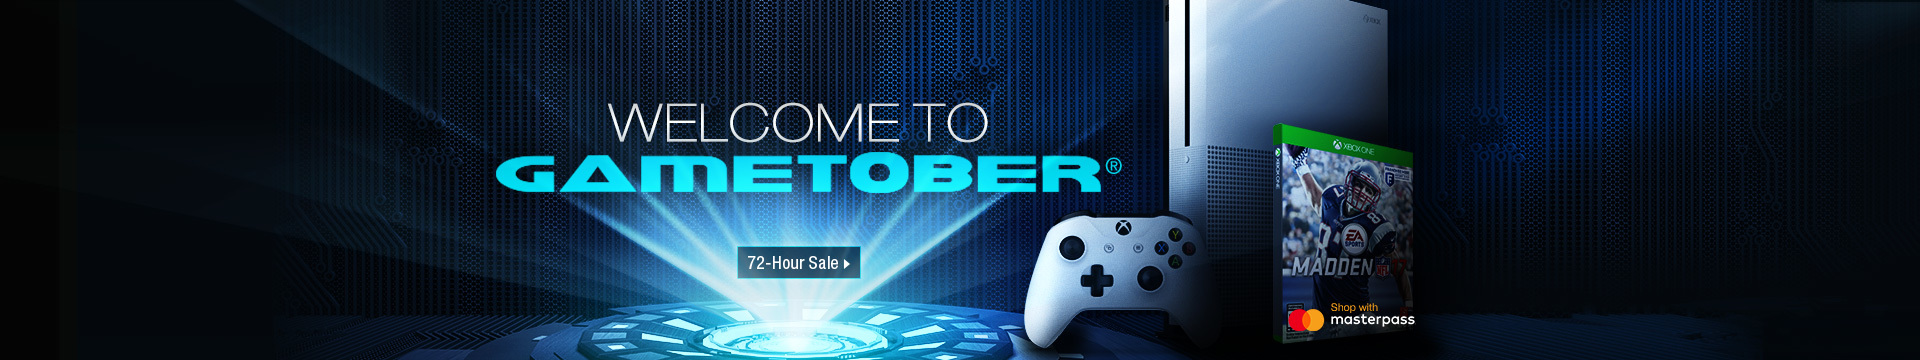 Welcome to Gametober